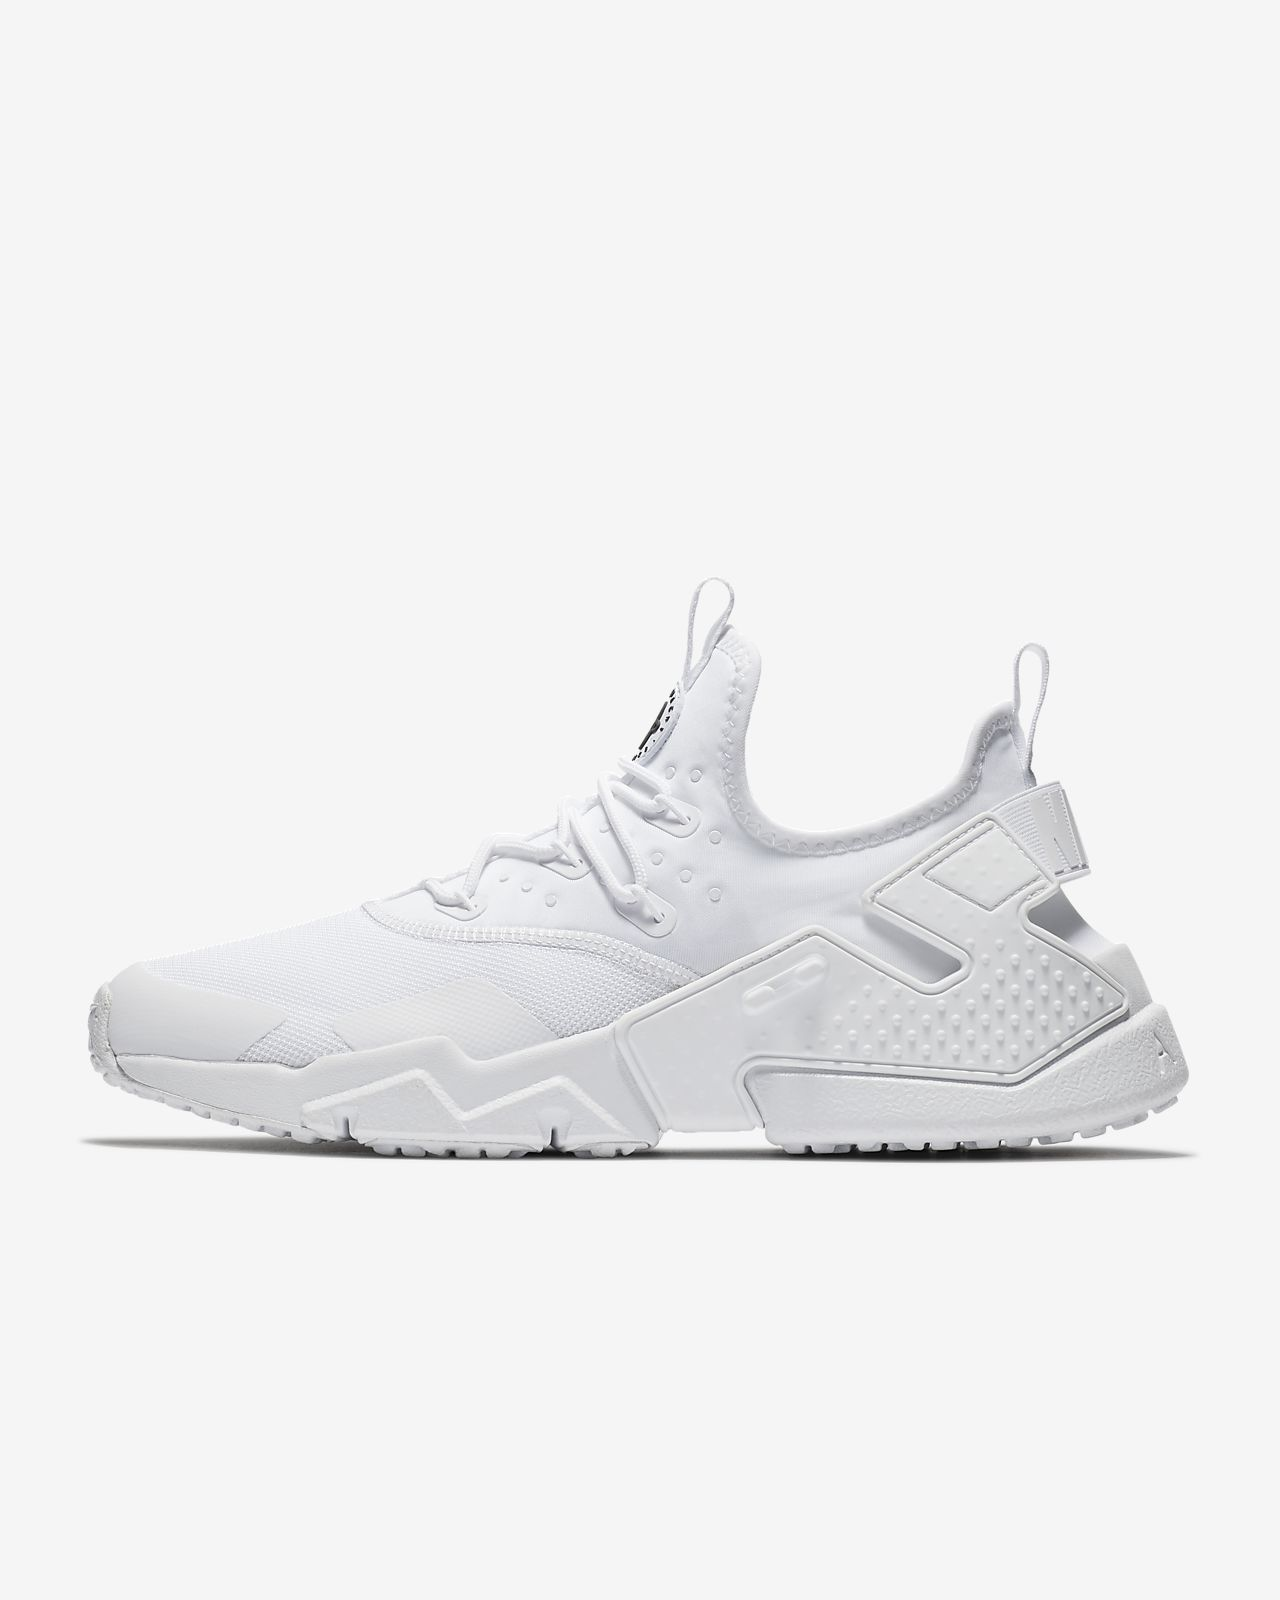 official photos b8454 57139 ... Nike Air Huarache Drift Men s Shoe